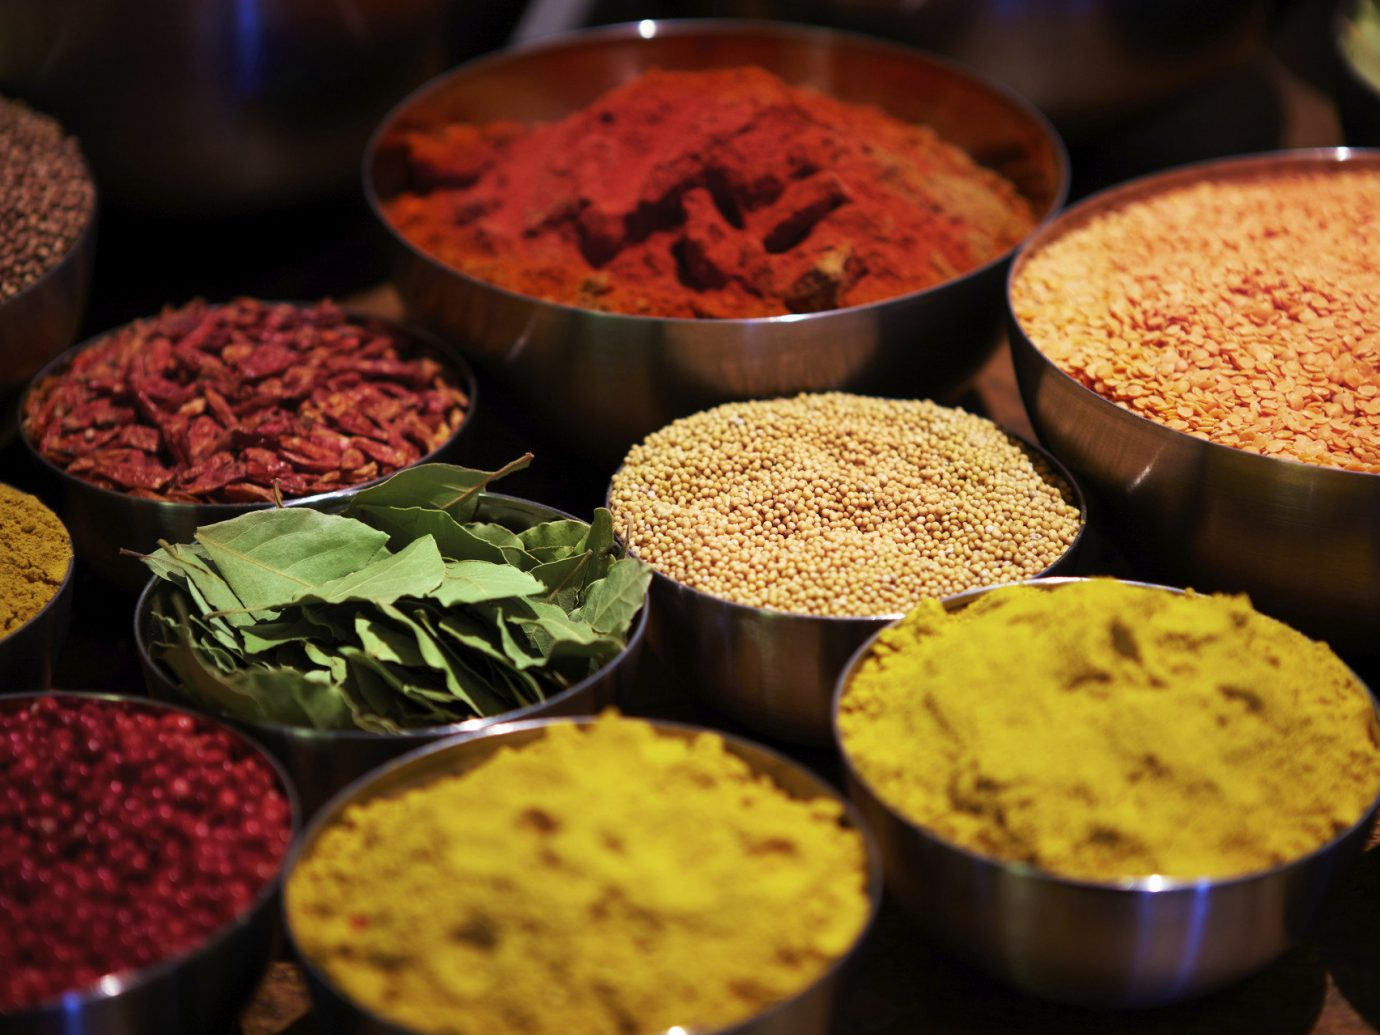 Travel Tips food color indoor different various many spice mix produce several baking indian cuisine flavor dessert variety